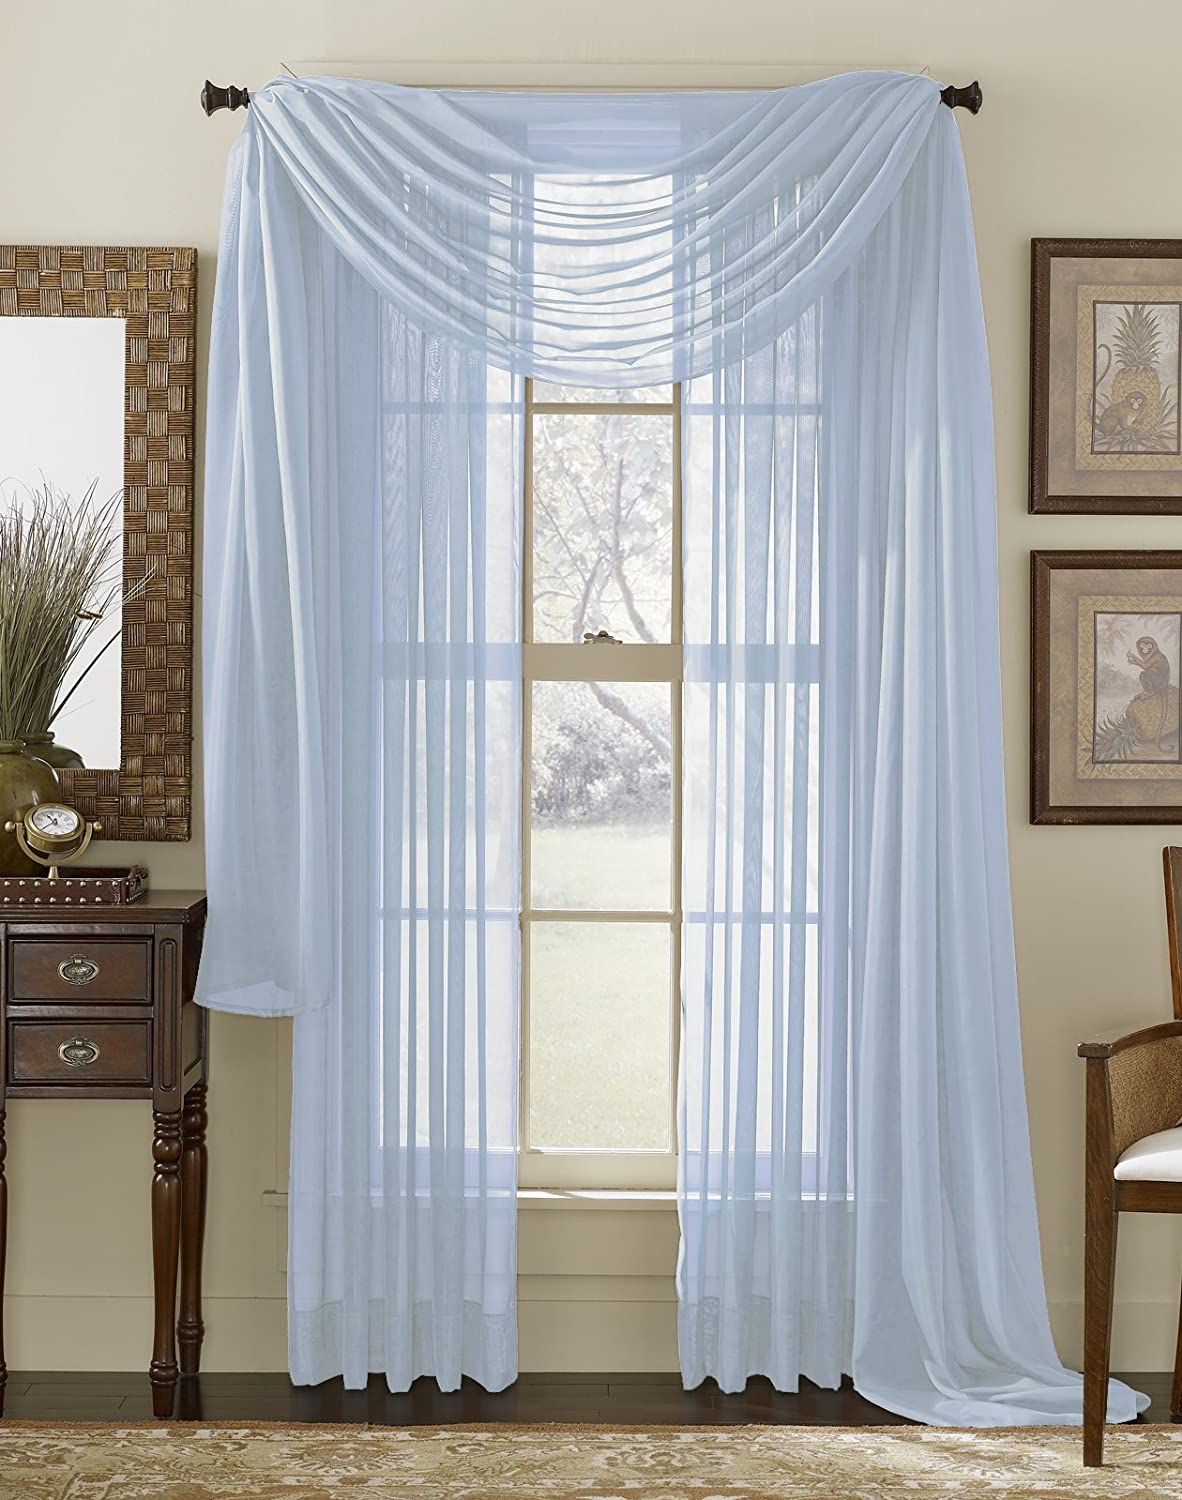 amazoncom light blue 216 sheer window scarf home kitchen - Blue And White Window Curtains